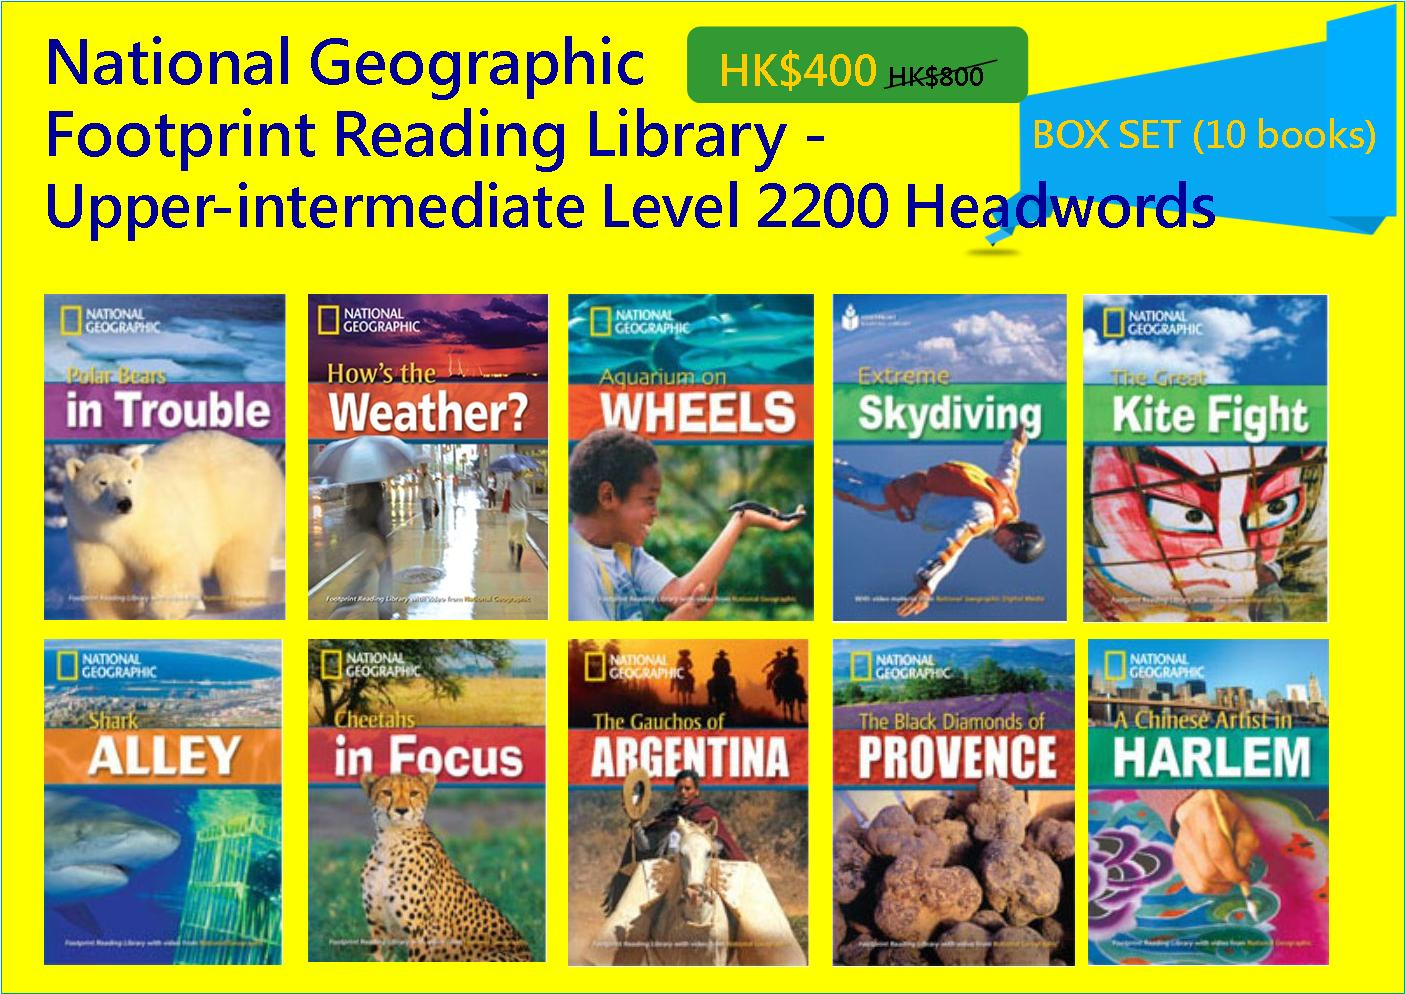 National Geographic Footprint Reading Library - Upper-intermediate Level 2200 Headwords (Box Set - 10 books)